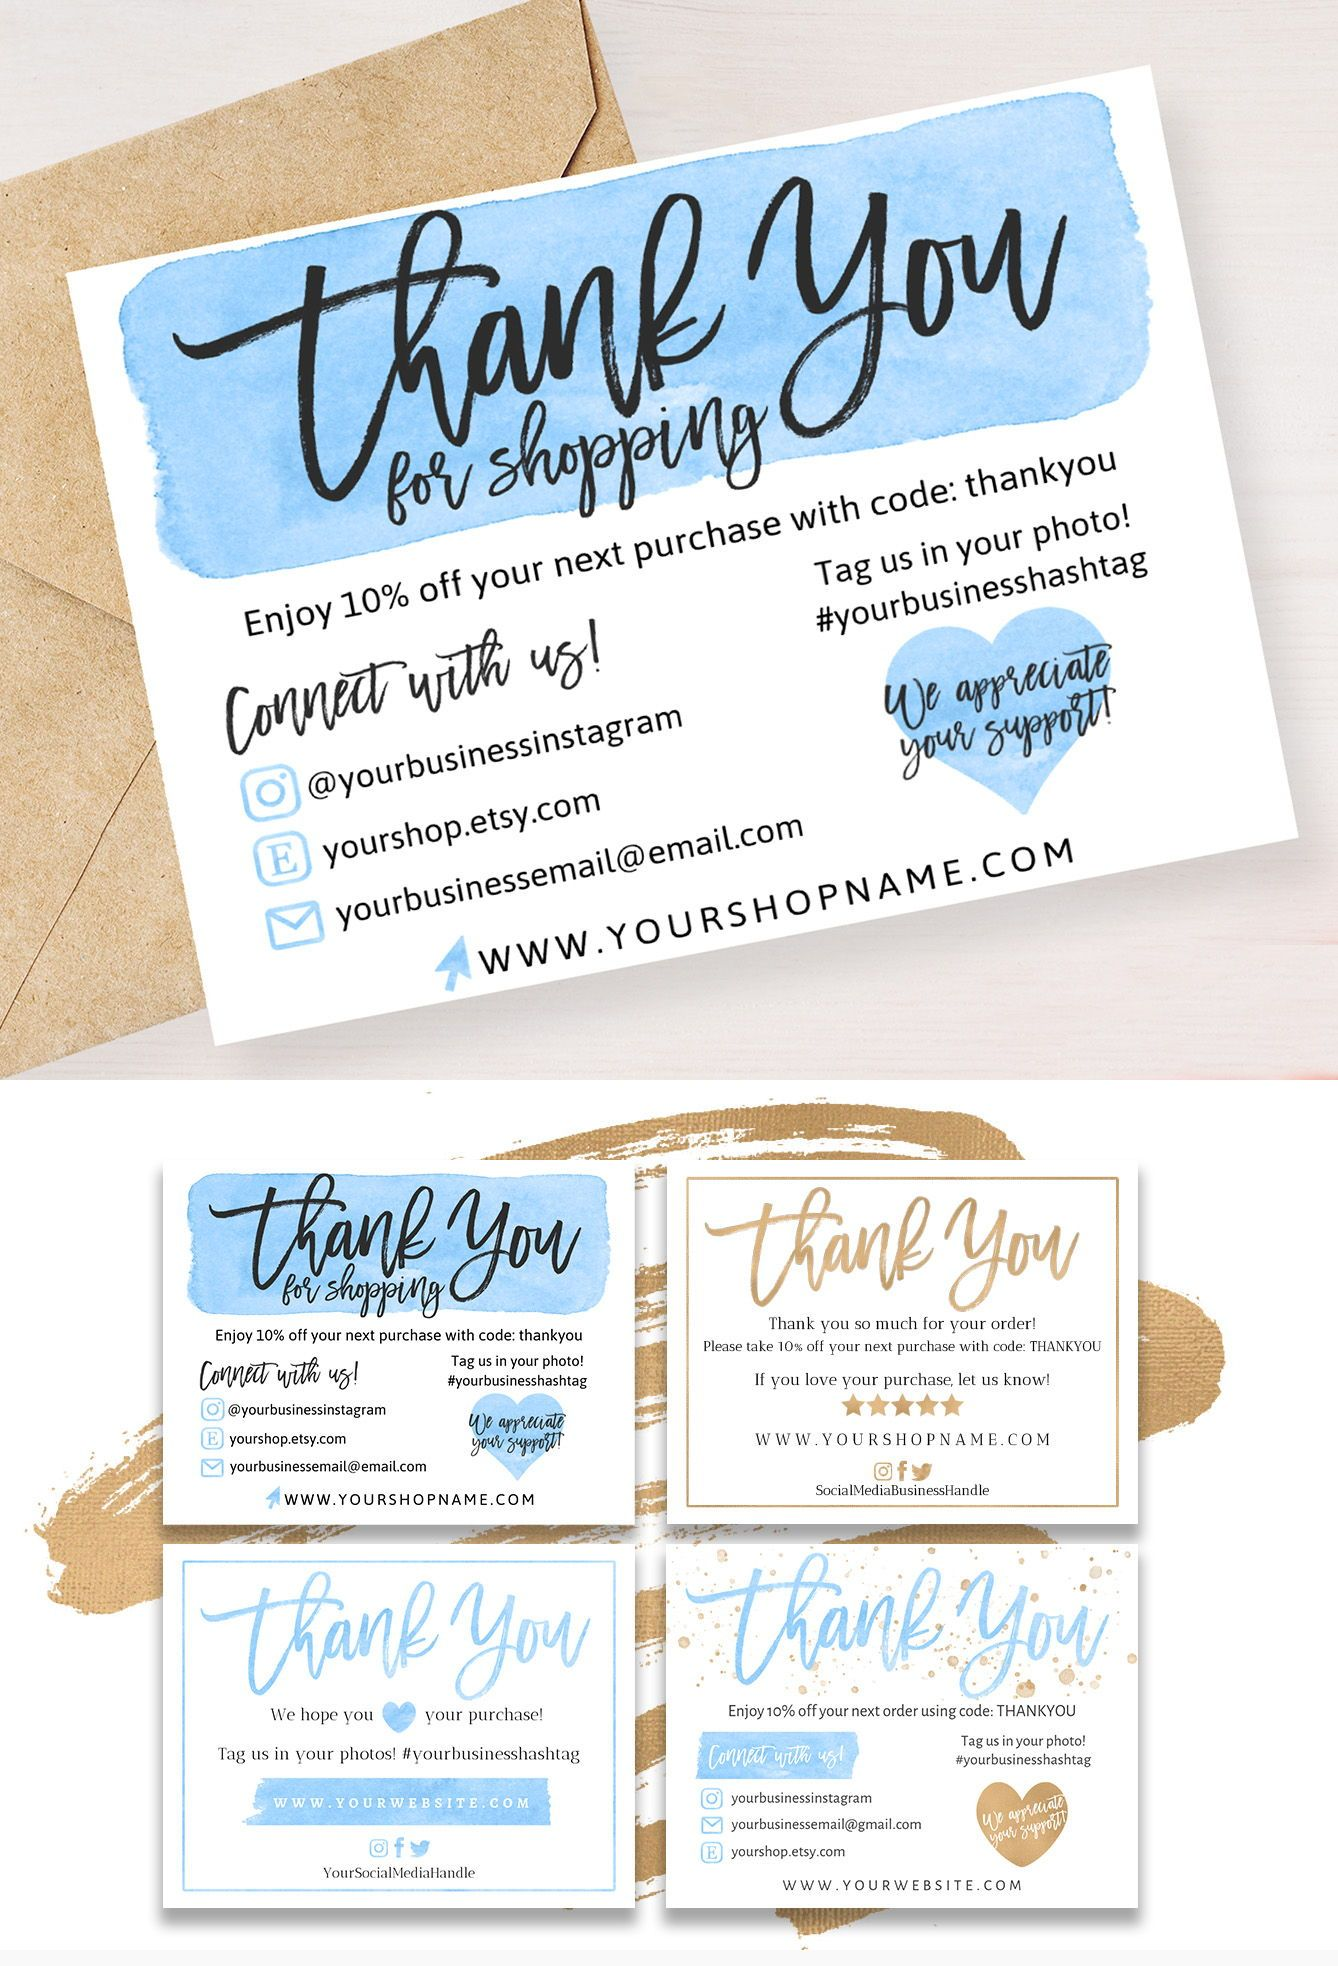 4 Diy Templates Thank You For Your Order Card Blue Gold Etsy Thank You Card Template Business Thank You Notes Business Thank You